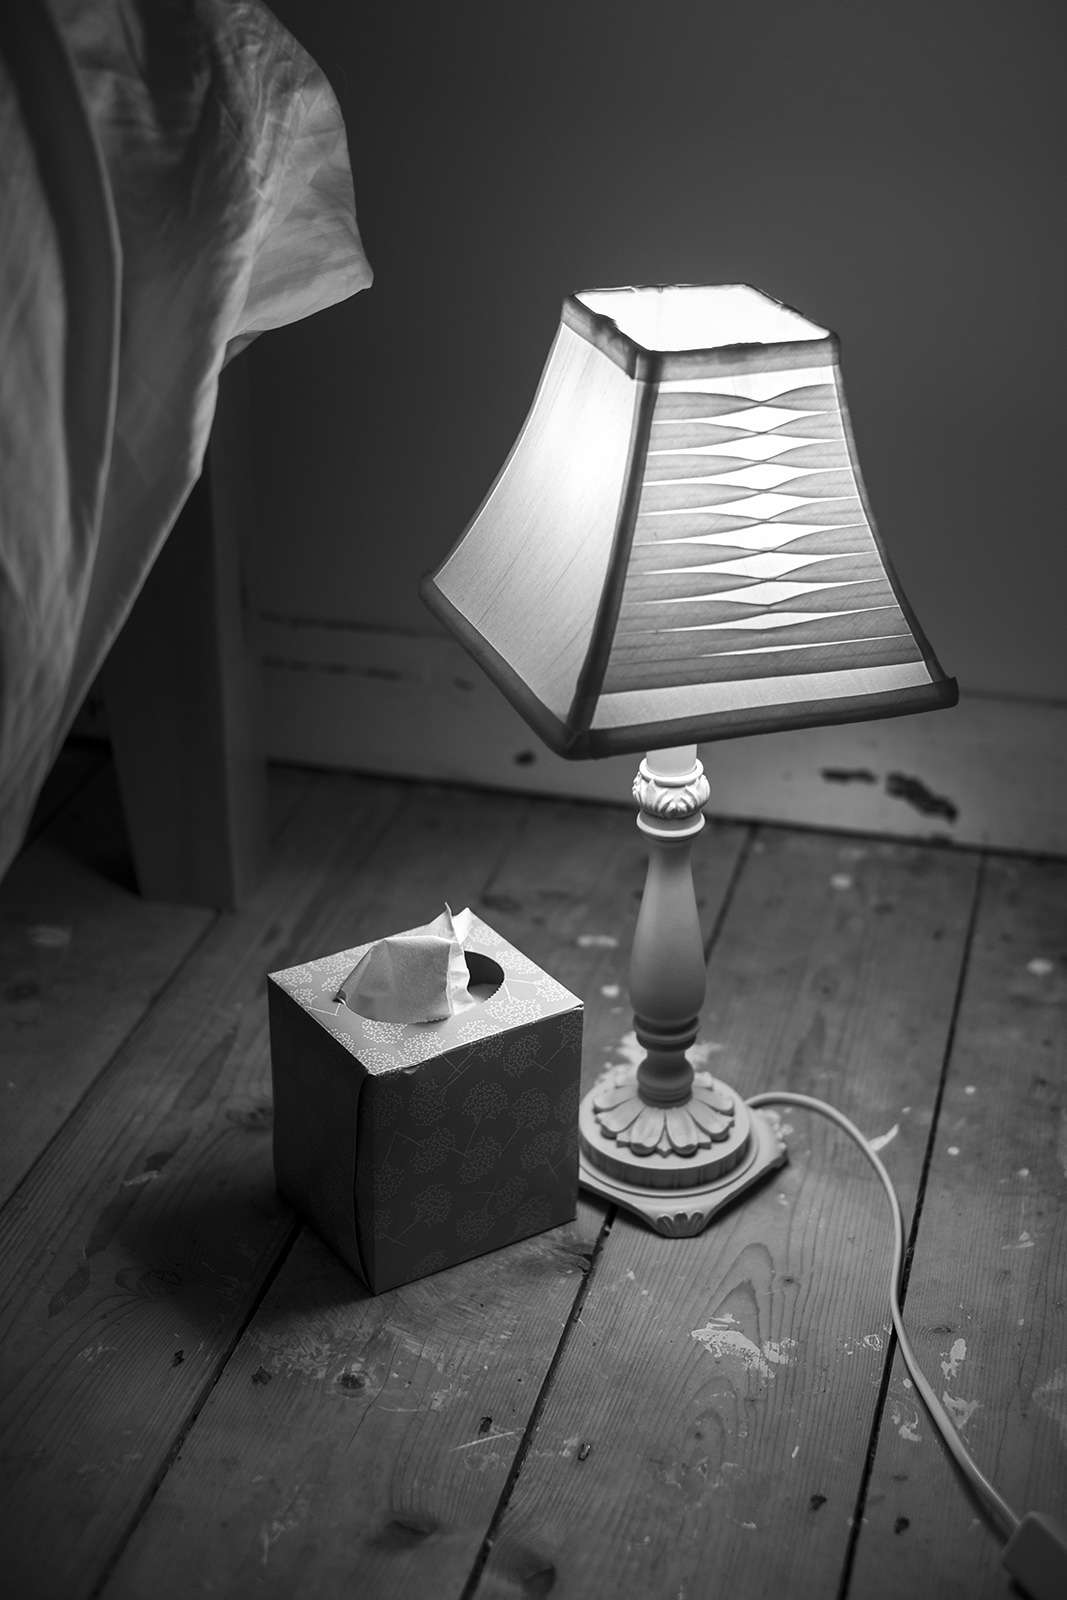 Bedside table lamp on rough wooden floor next to box of tissues, black and white interior documentary photograph portrait © P. Maton 2019 eyeteeth.net